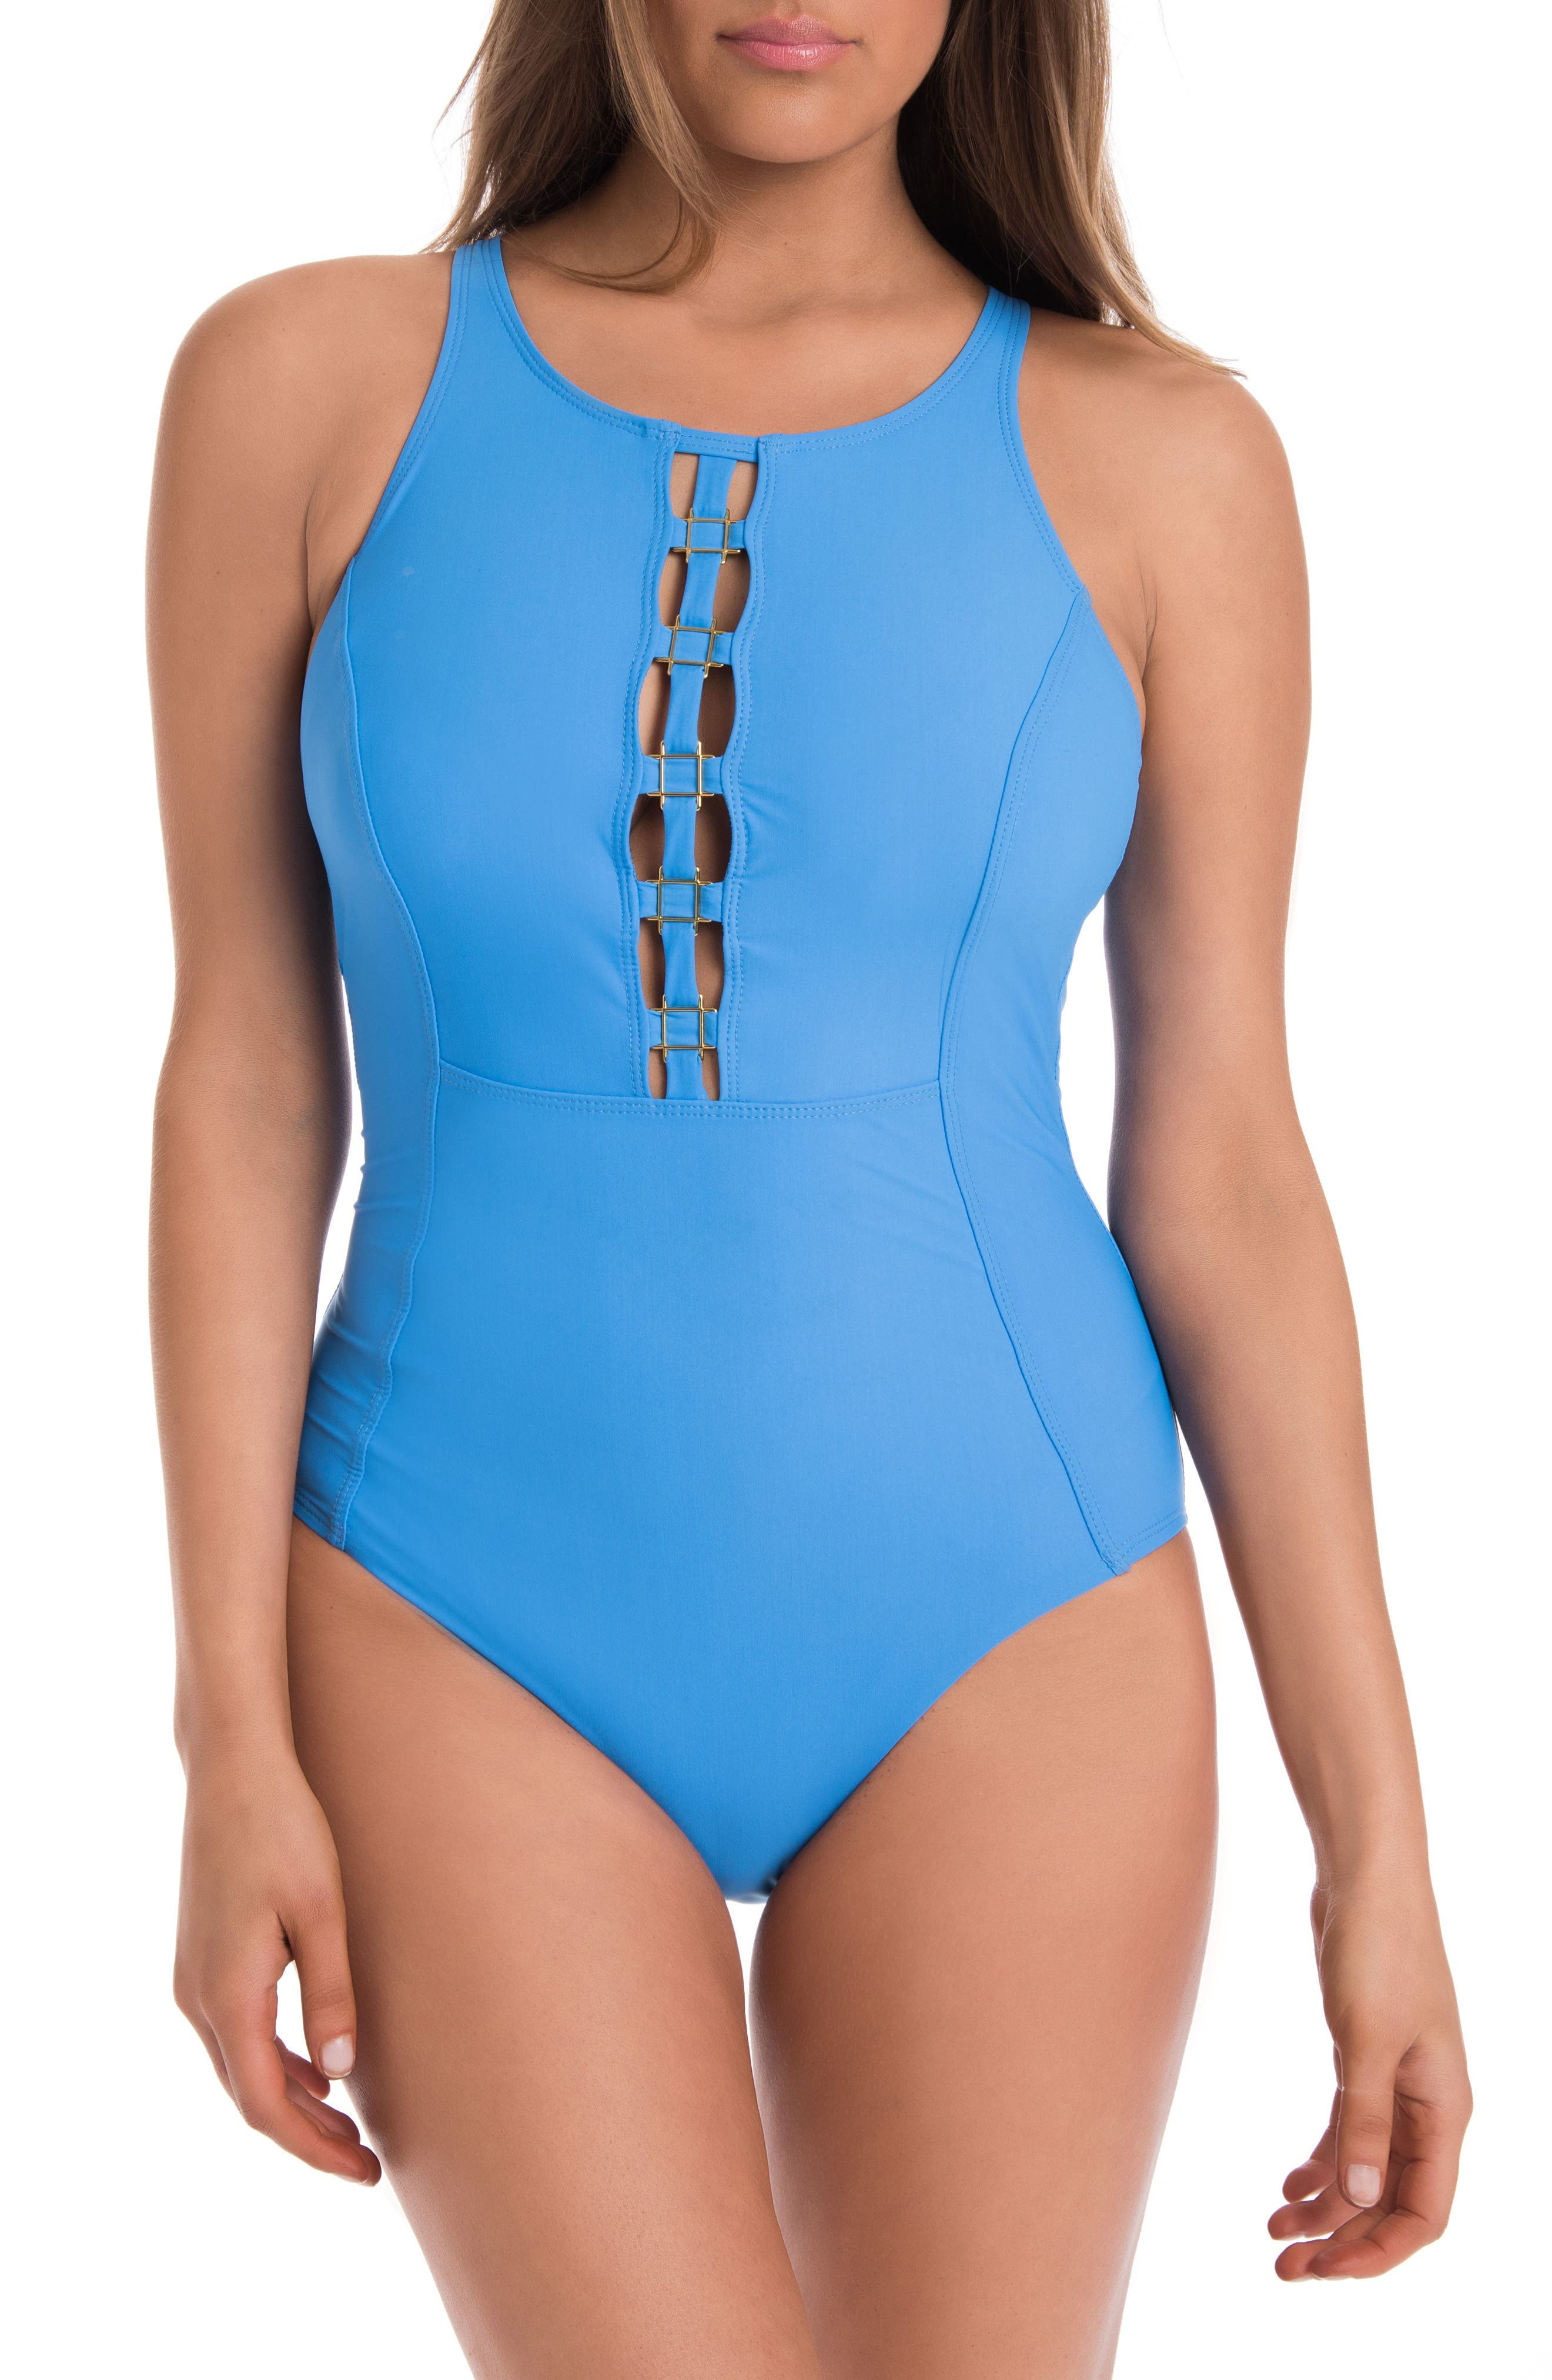 You Only Live Twice Sonder One-Piece Swimsuit,                         Main,                         color, 453